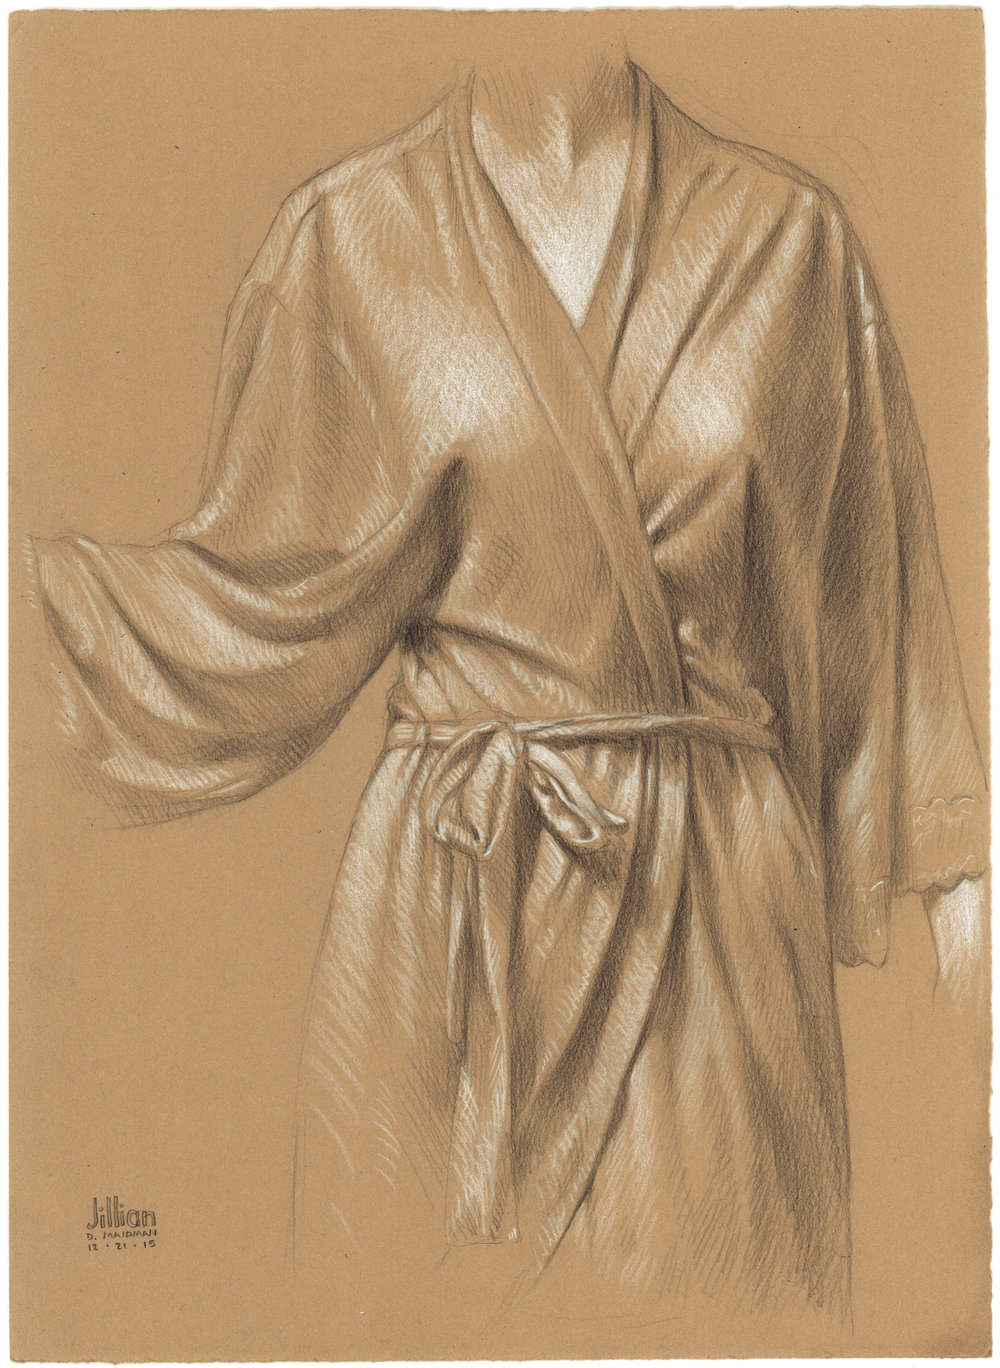 Jillian's Robe , 2015, Pencil on paper, 15 × 11 in